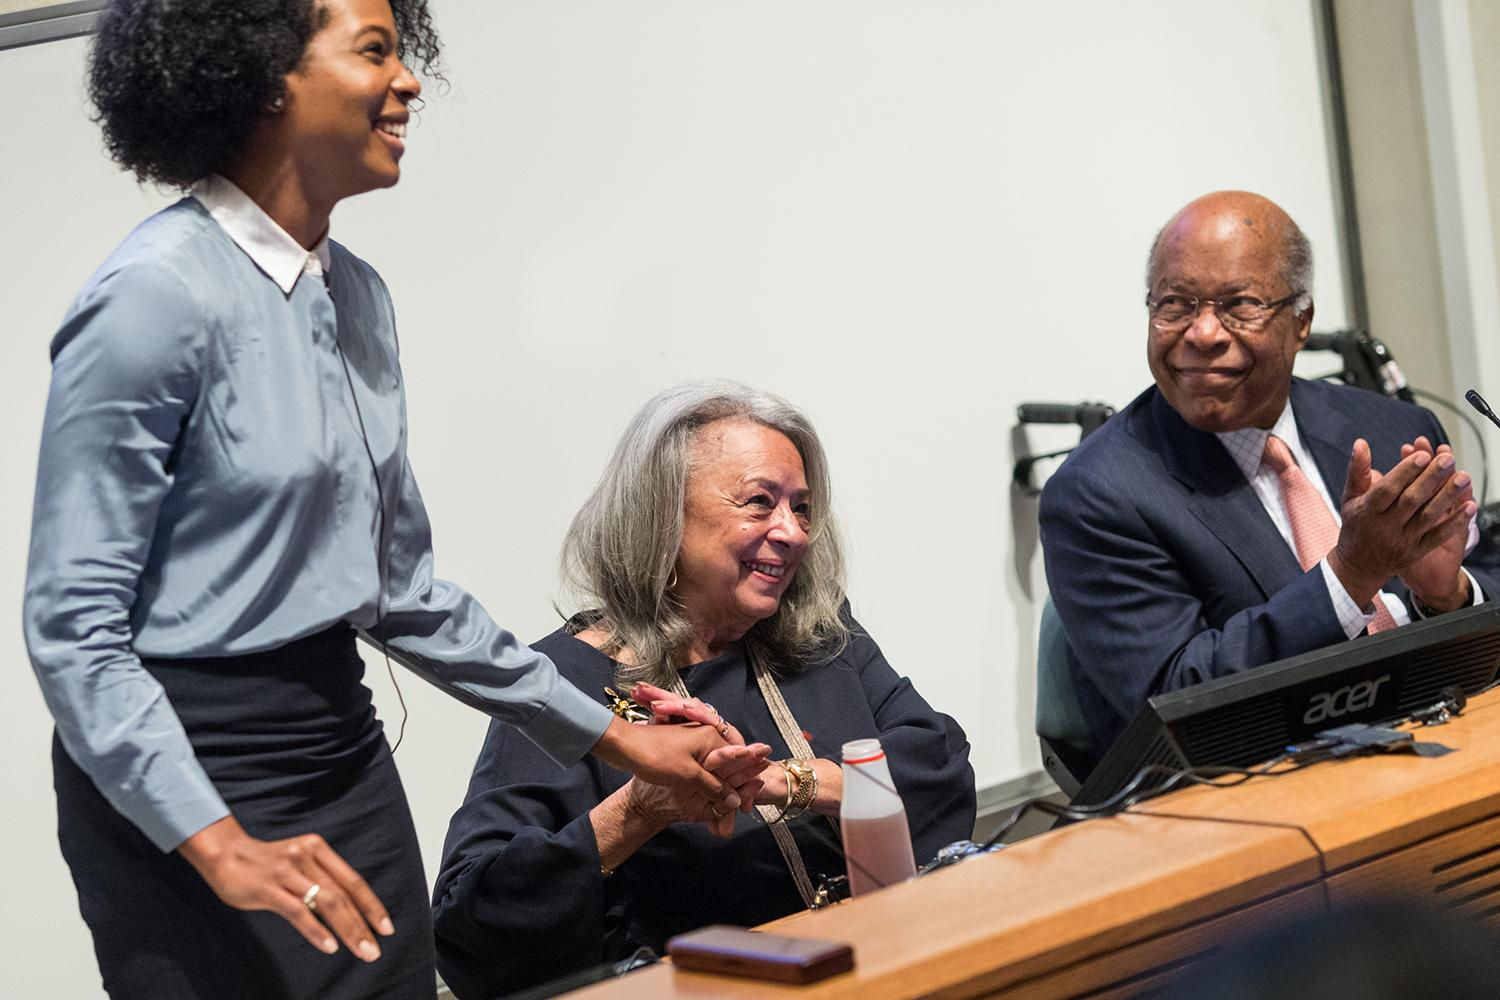 Dr. Vivian Pinn, center, a 1967 graduate of UVA's School of Medicine, was the only woman and only African-American in her class. (Photos by Coe Sweet)